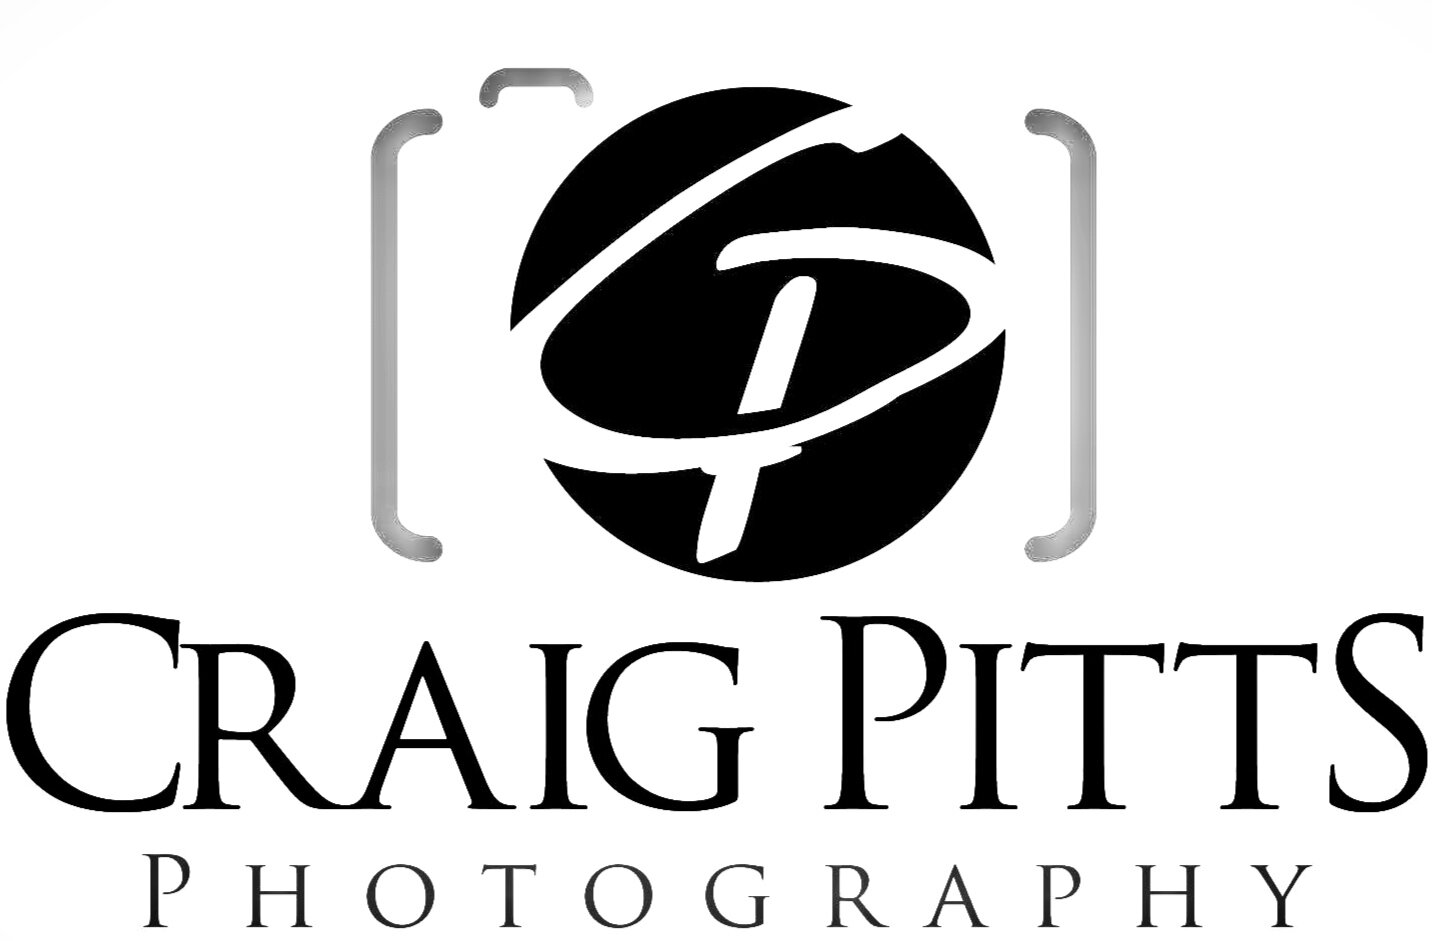 Craig Pitts Photography